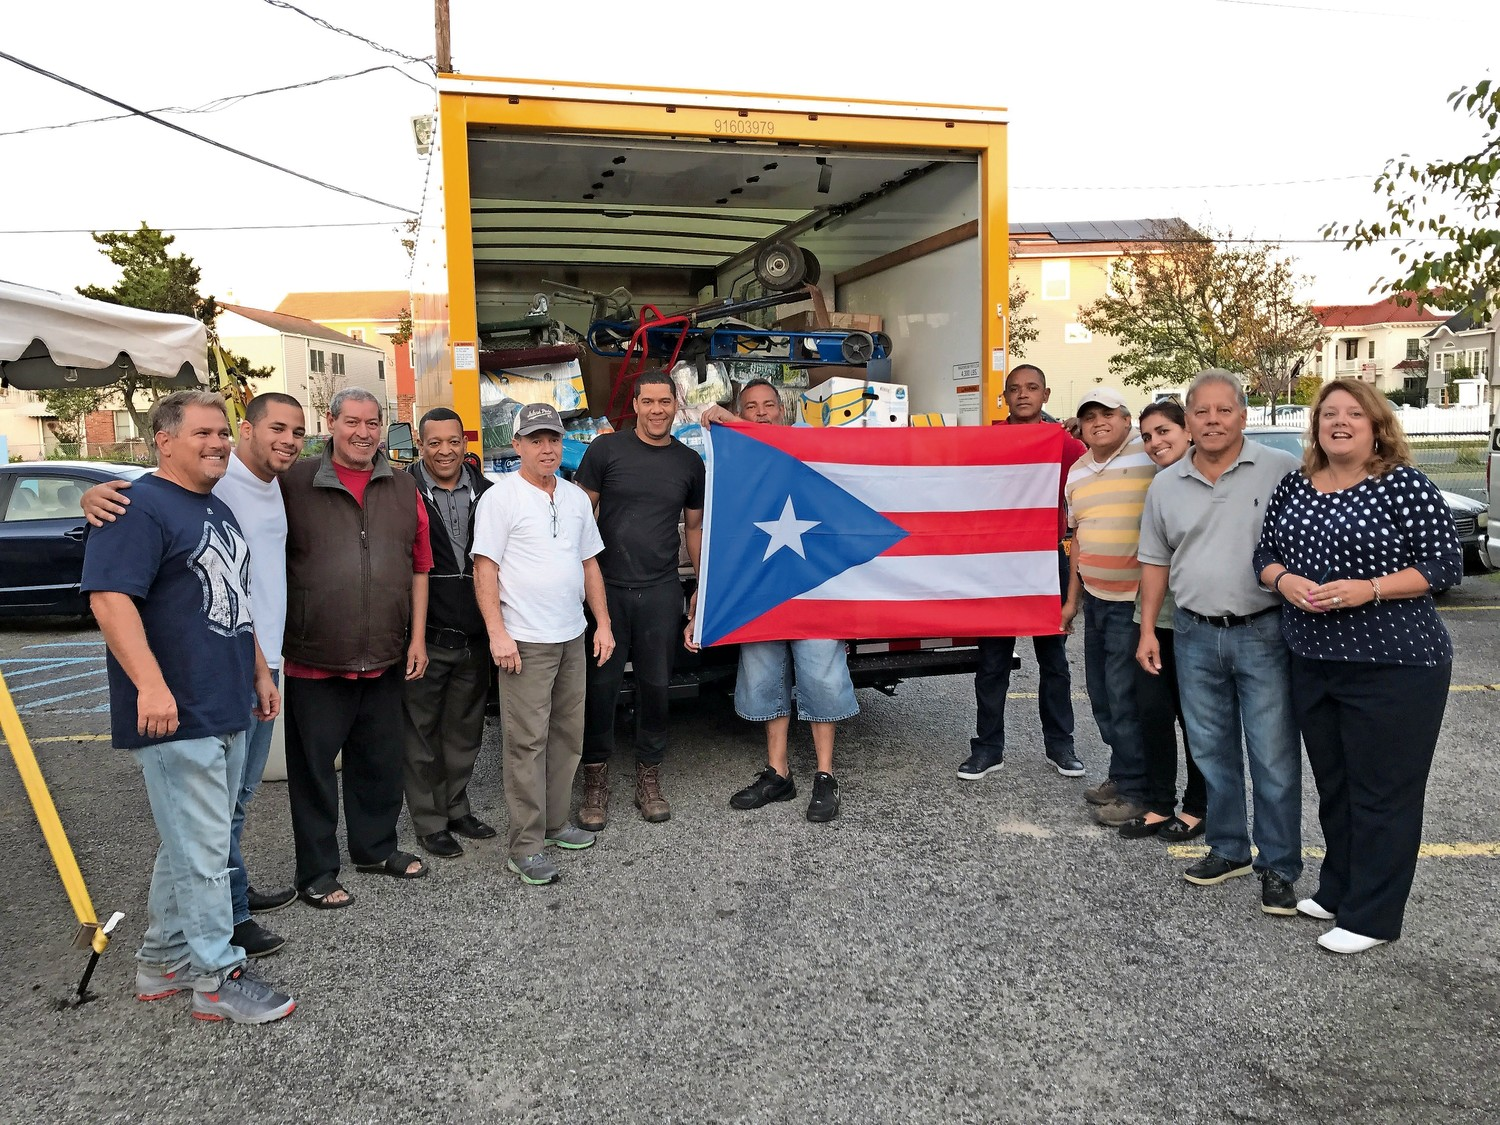 Members of the Long Beach Latino Civic Association loaded a truck on Tuesday with supplies that will be shipped to Puerto Rico as part of a local relief effort.